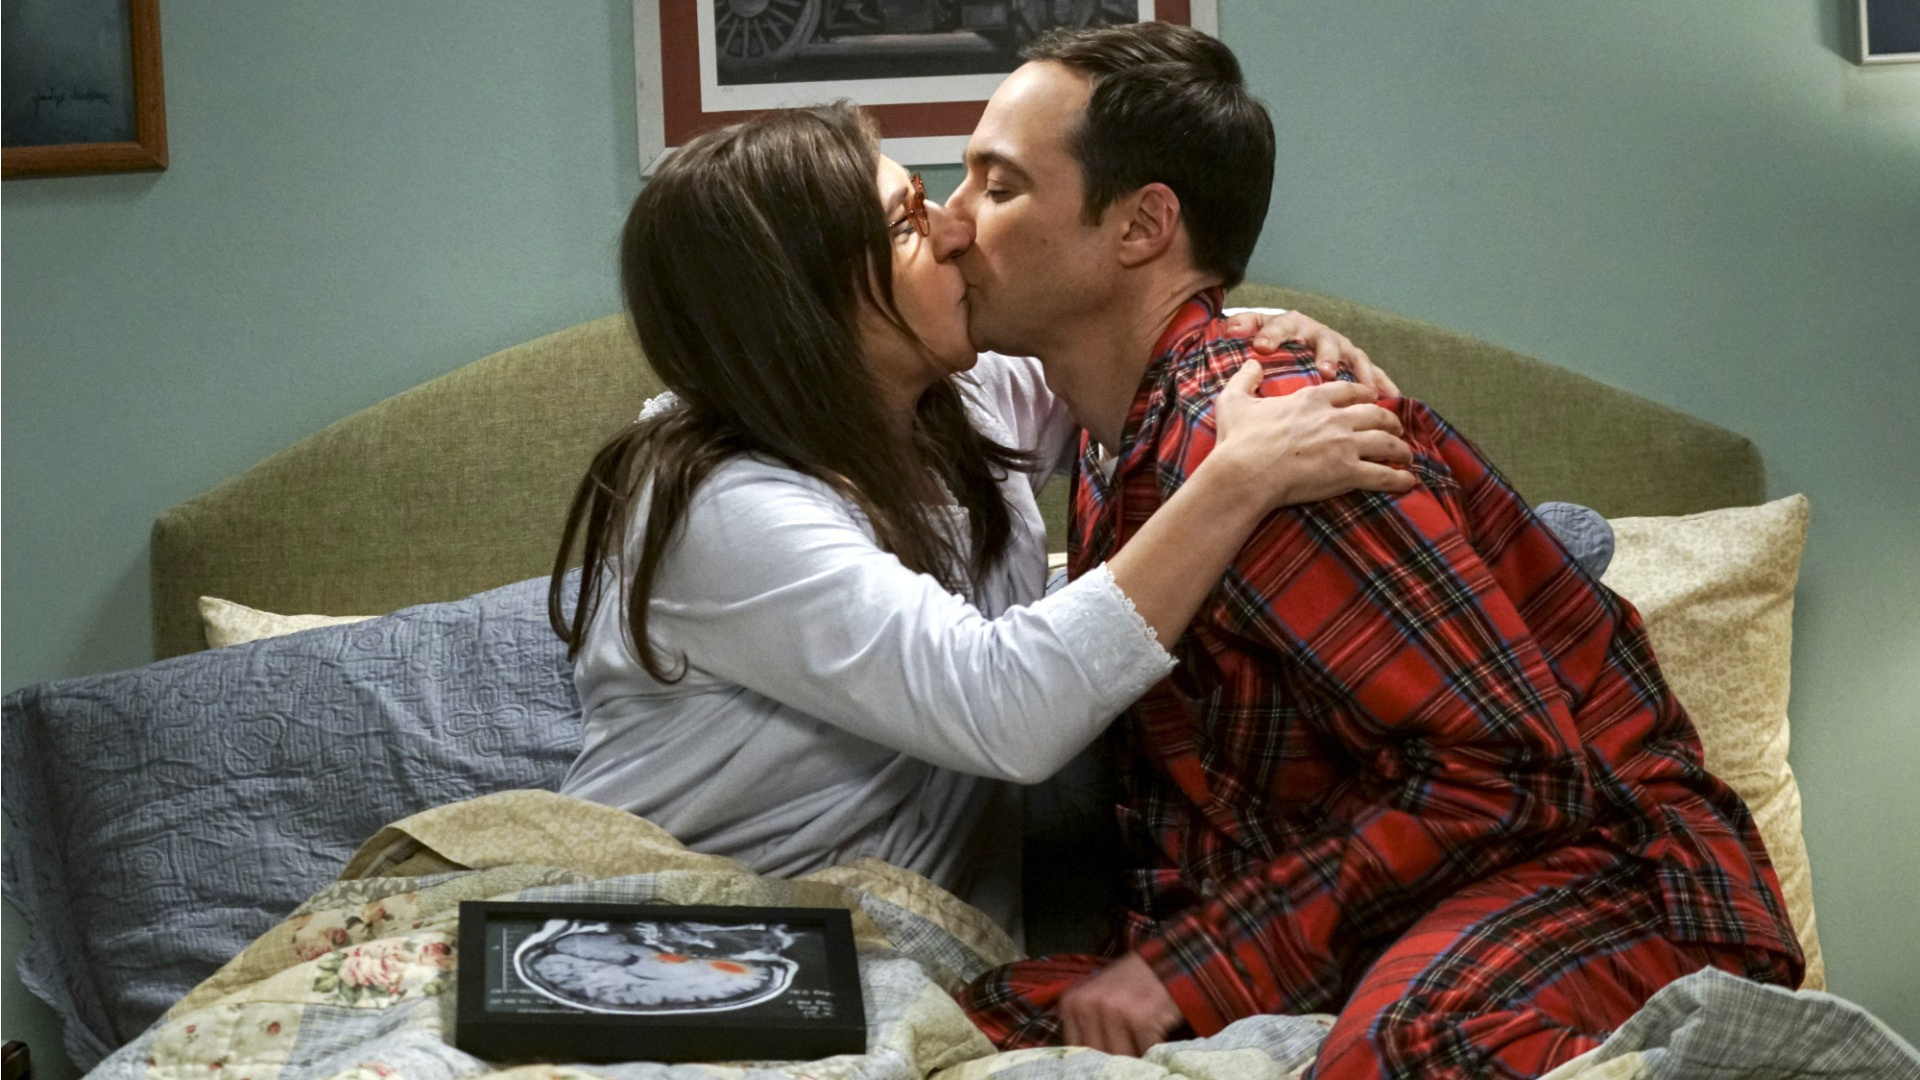 Amy pulls Sheldon in for a steamy smooch.